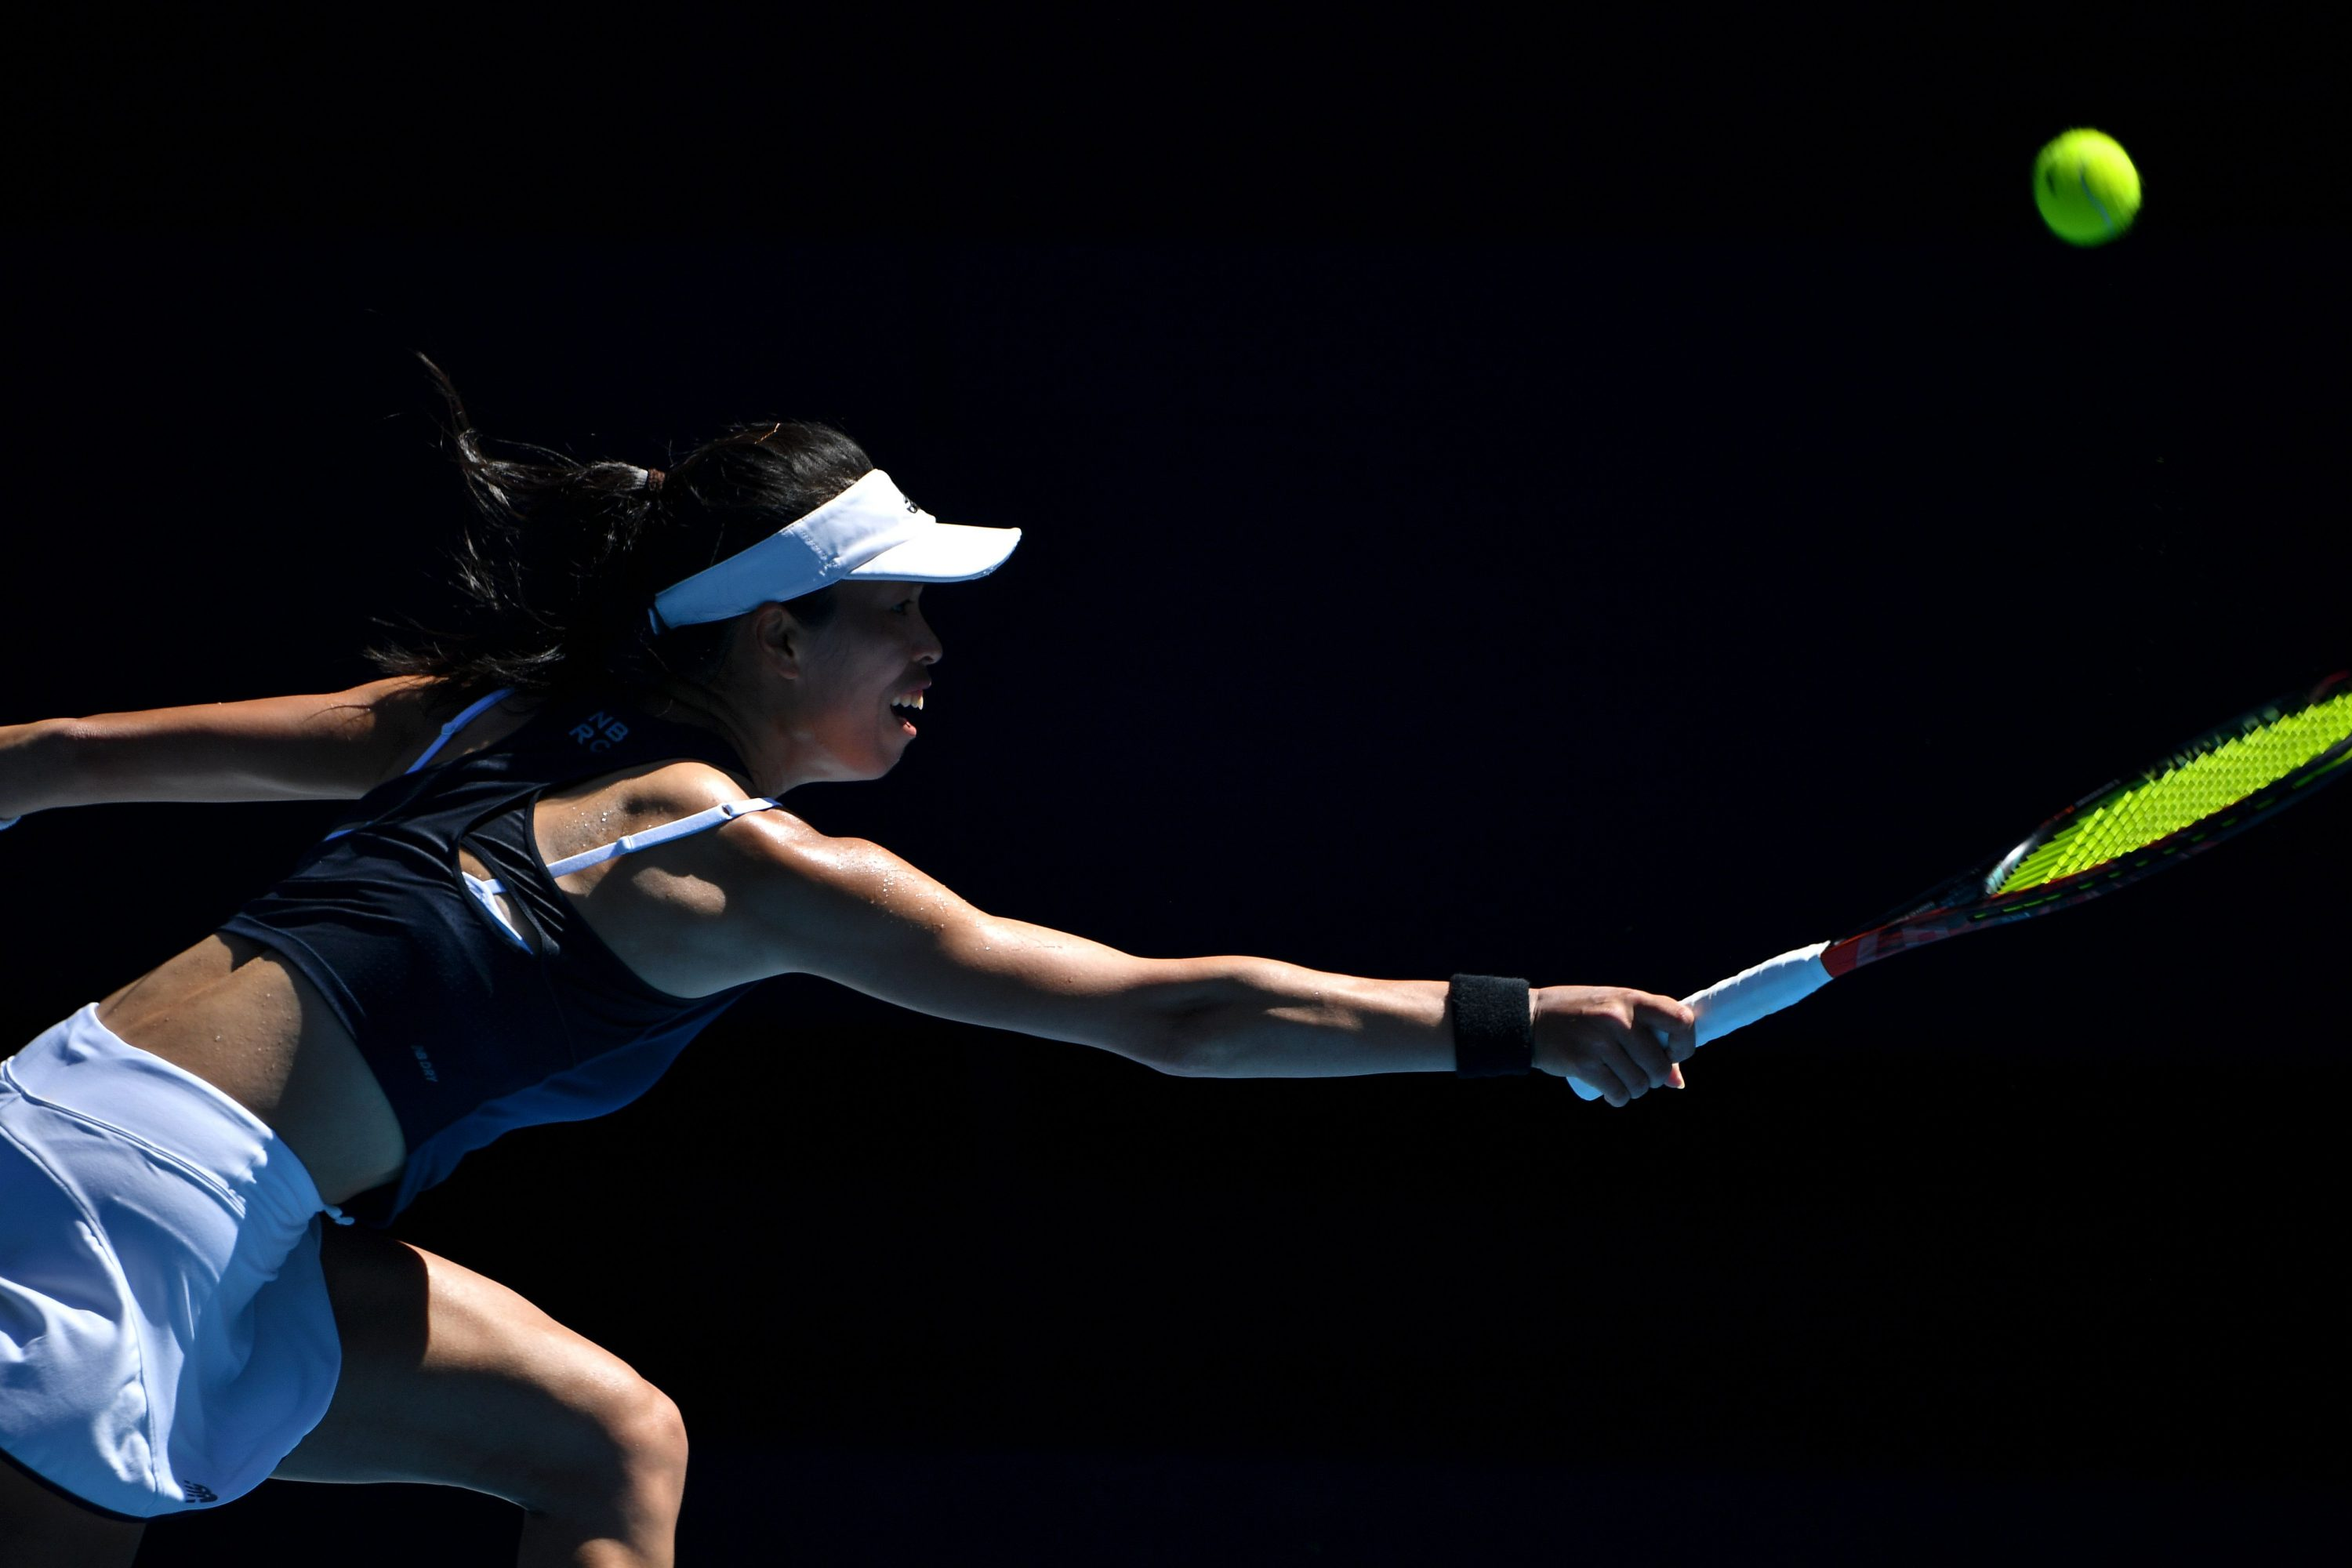 Taiwan's Su-Wei Hsieh hits a return against Bianca Andreescu of Canada during their women's singles match on day three of the Australian Open tennis tournament in Melbourne on February 10, 2021.